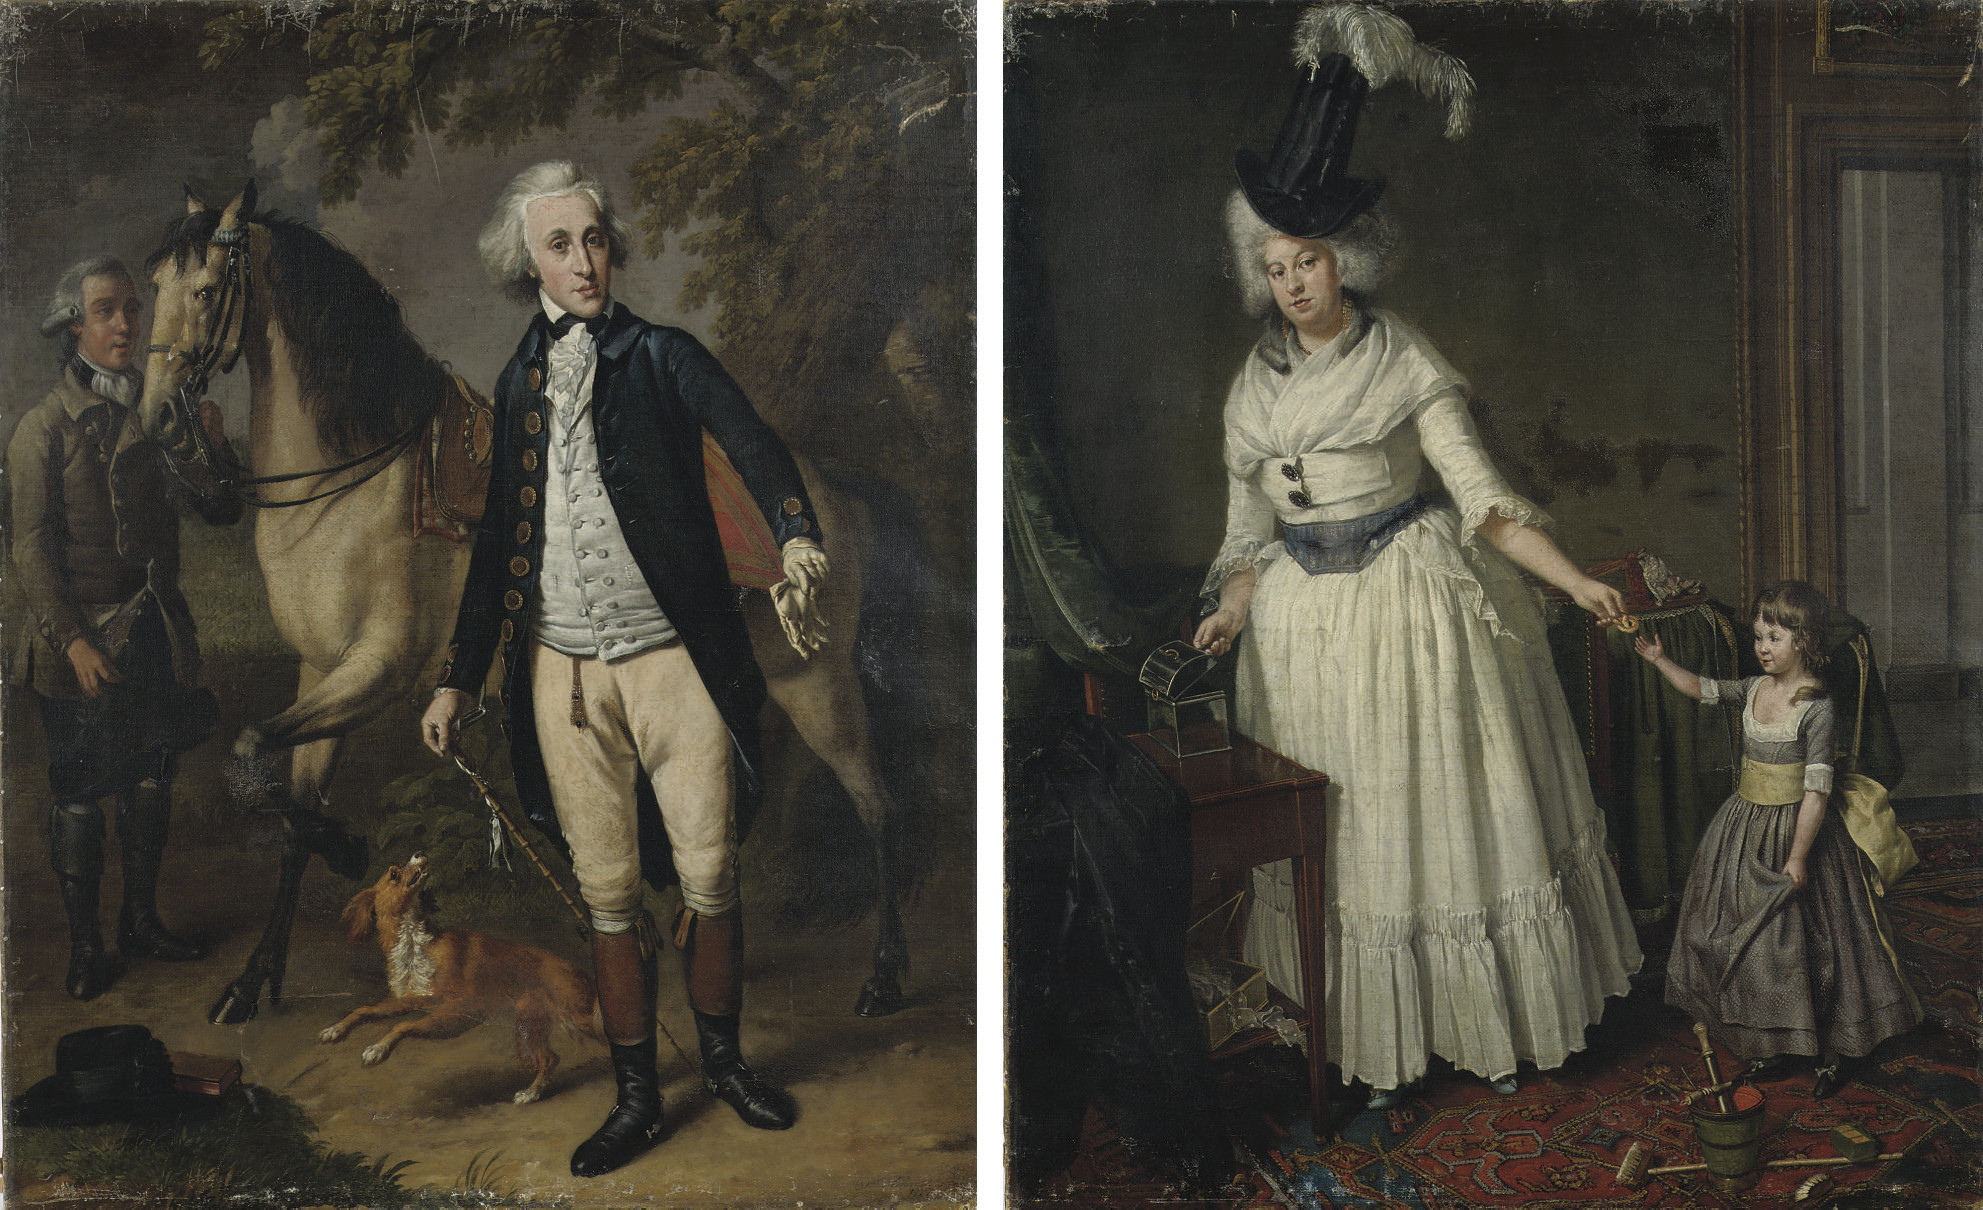 Portrait of Jan van Walre, full length, in a riding costume with his dog, his horse and a servant by his side; and Portrait of Maria Kops, full length, in a white dress and elaborate hat with her daughter by her side